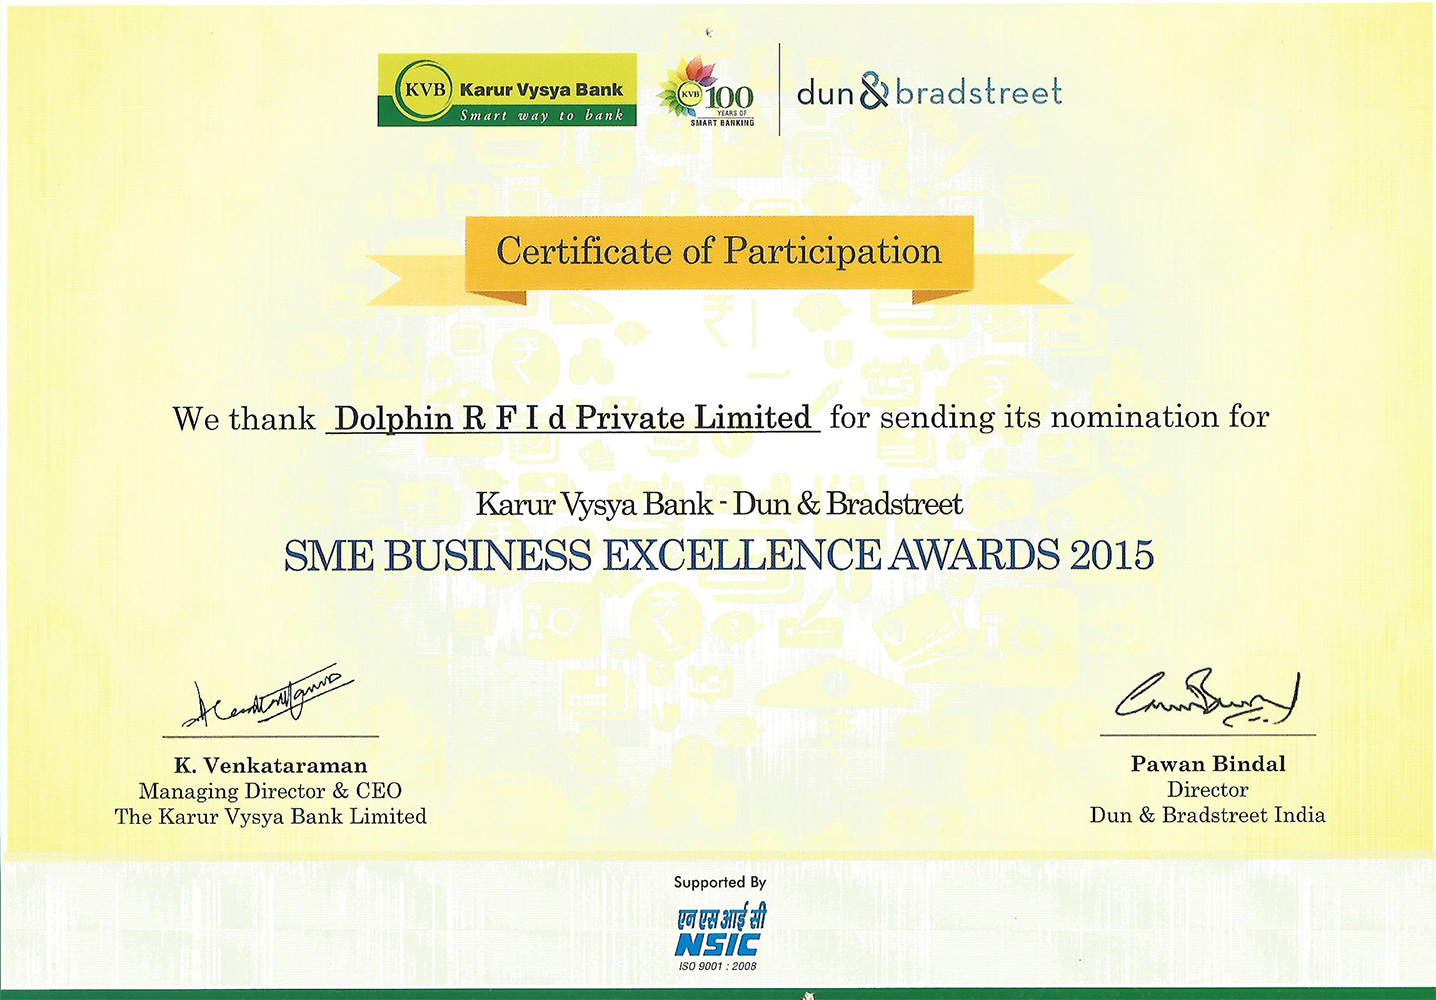 sme-business-excellence-awards-participation-certificate